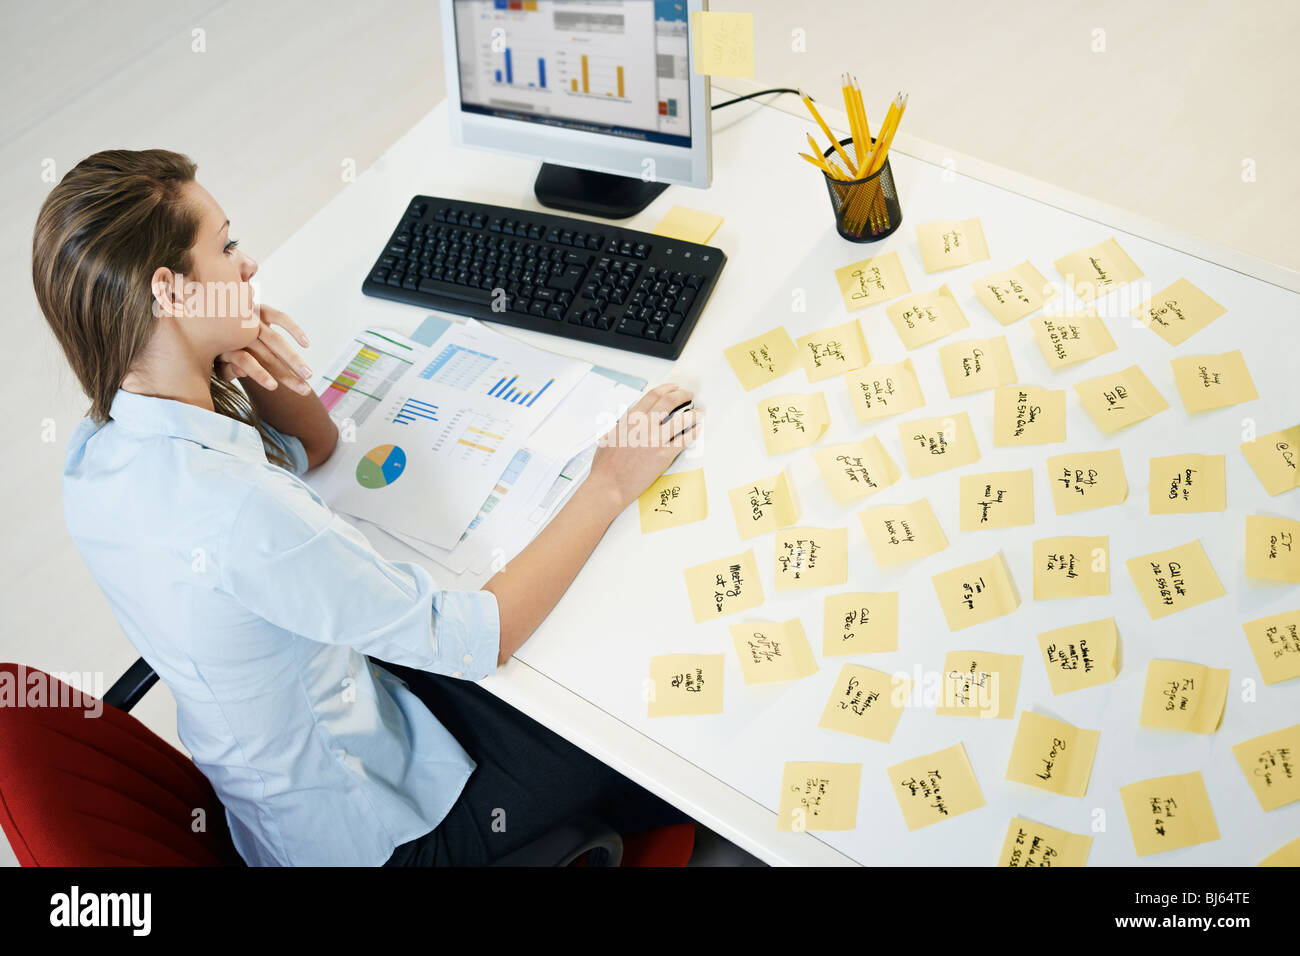 tired business woman with adhesive notes on table. High angle view Stock Photo